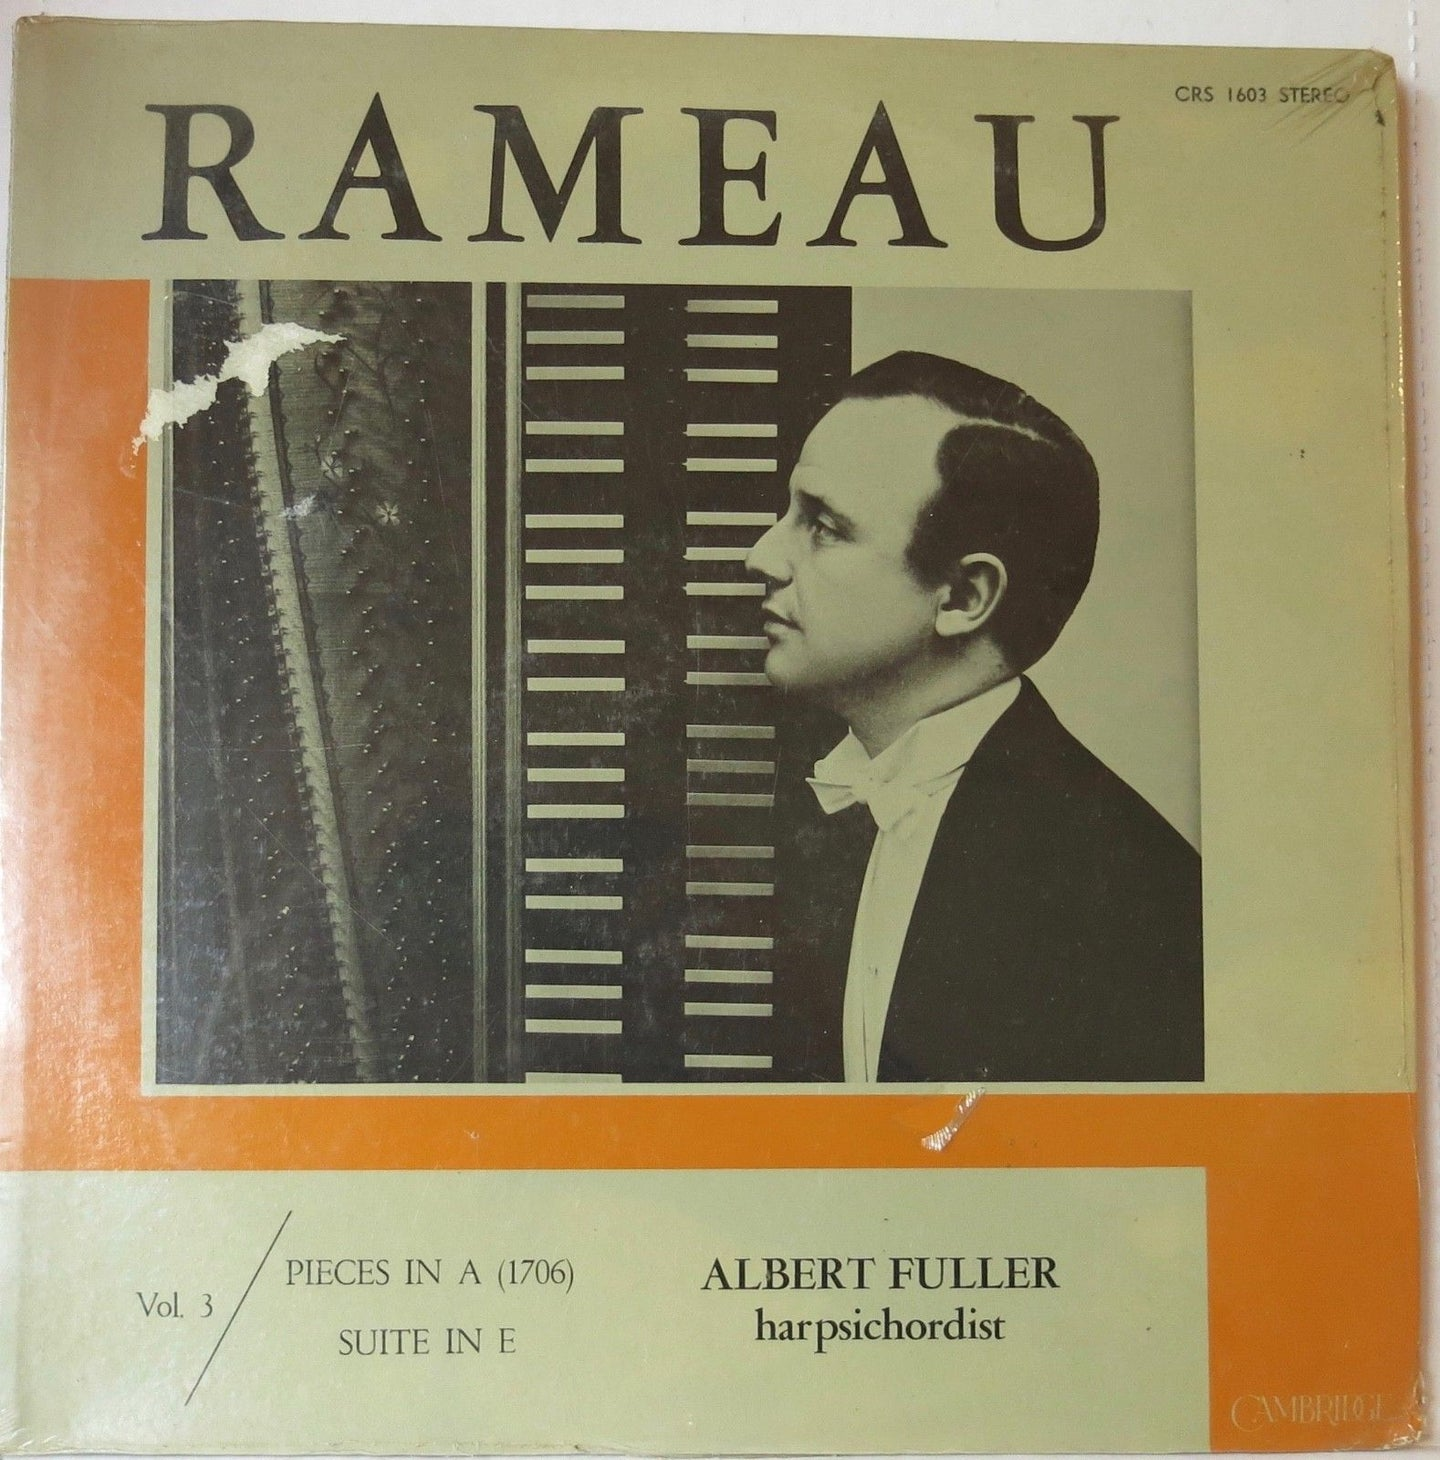 Rameau Vol. 3 Pieces In A, Suite In E - Cambridge Records